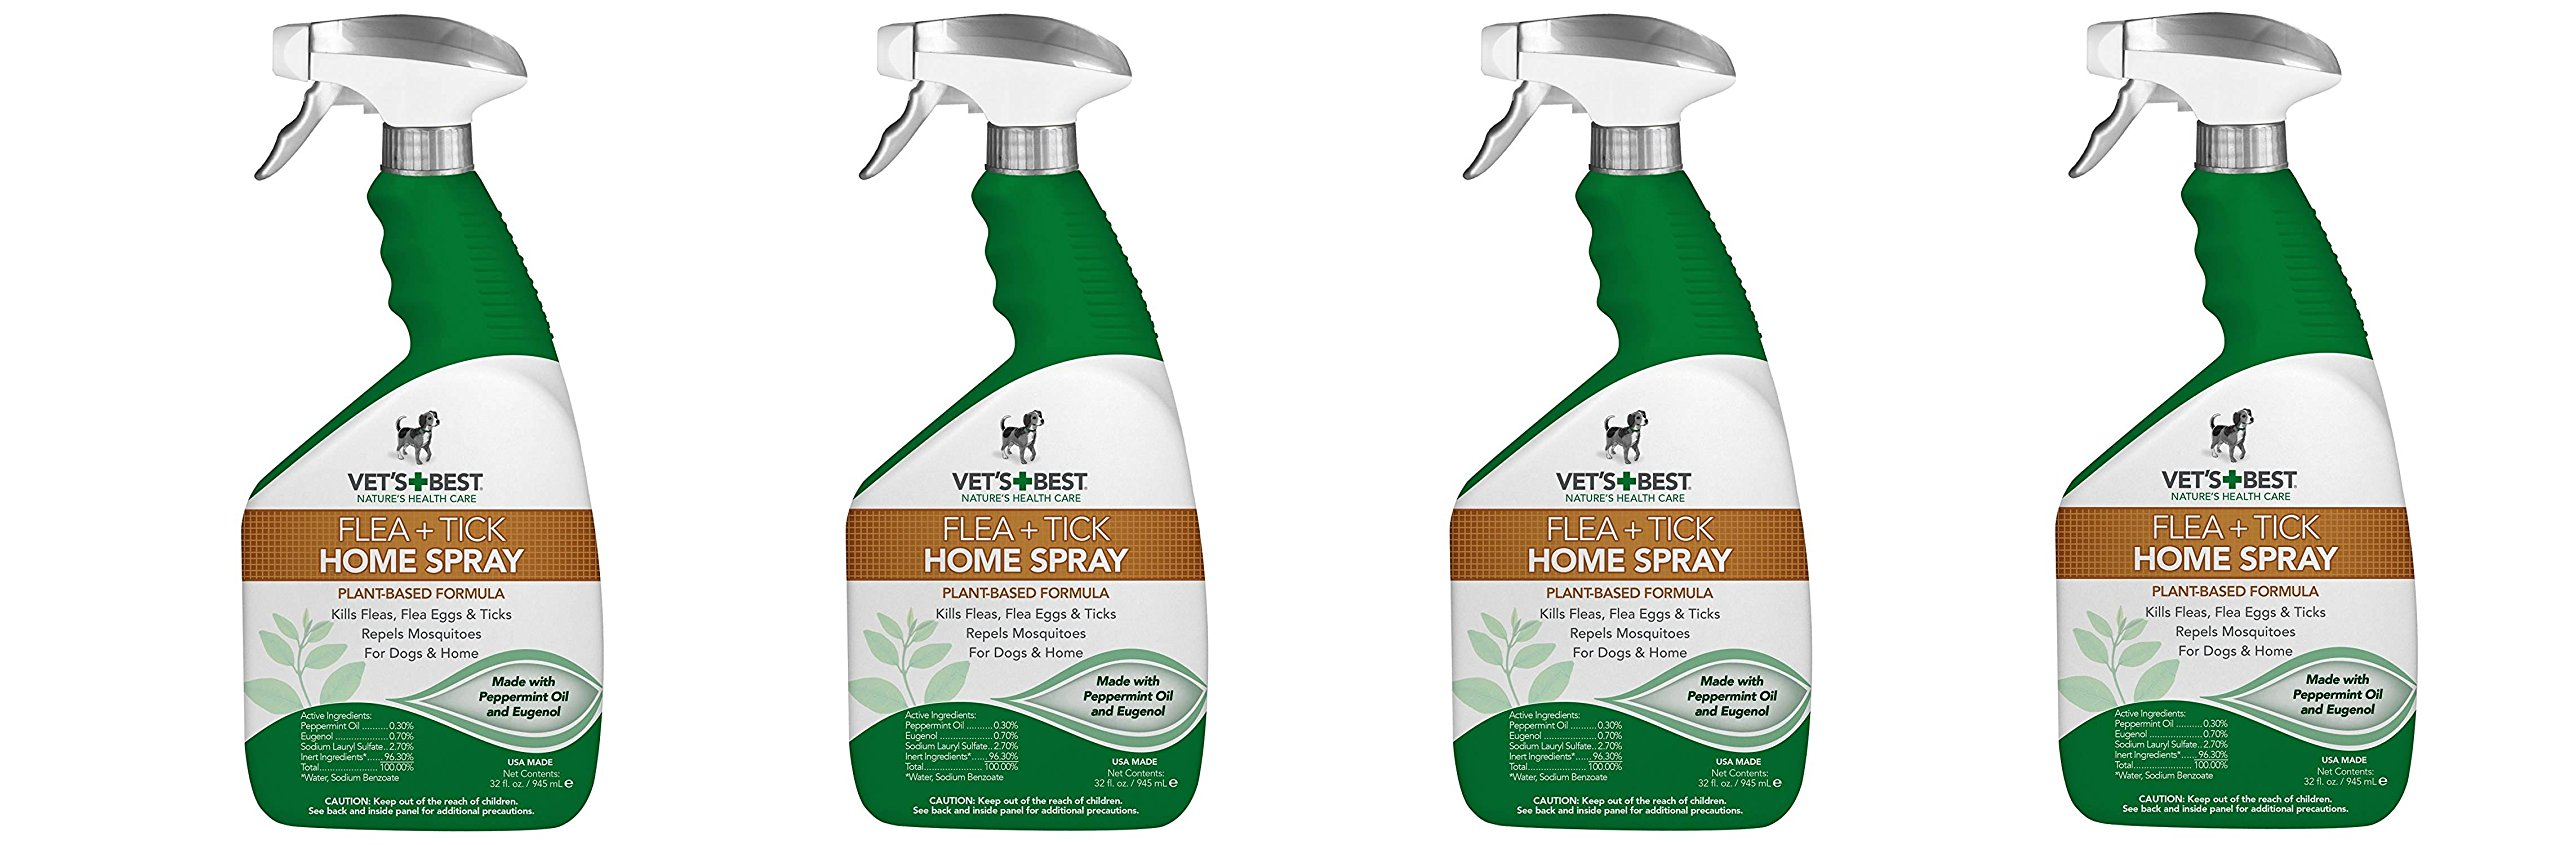 Vets Best fEcnwF Natural Flea and Tick Home Spray, USA Made, 32 oz (4 Pack) by Vet's Best